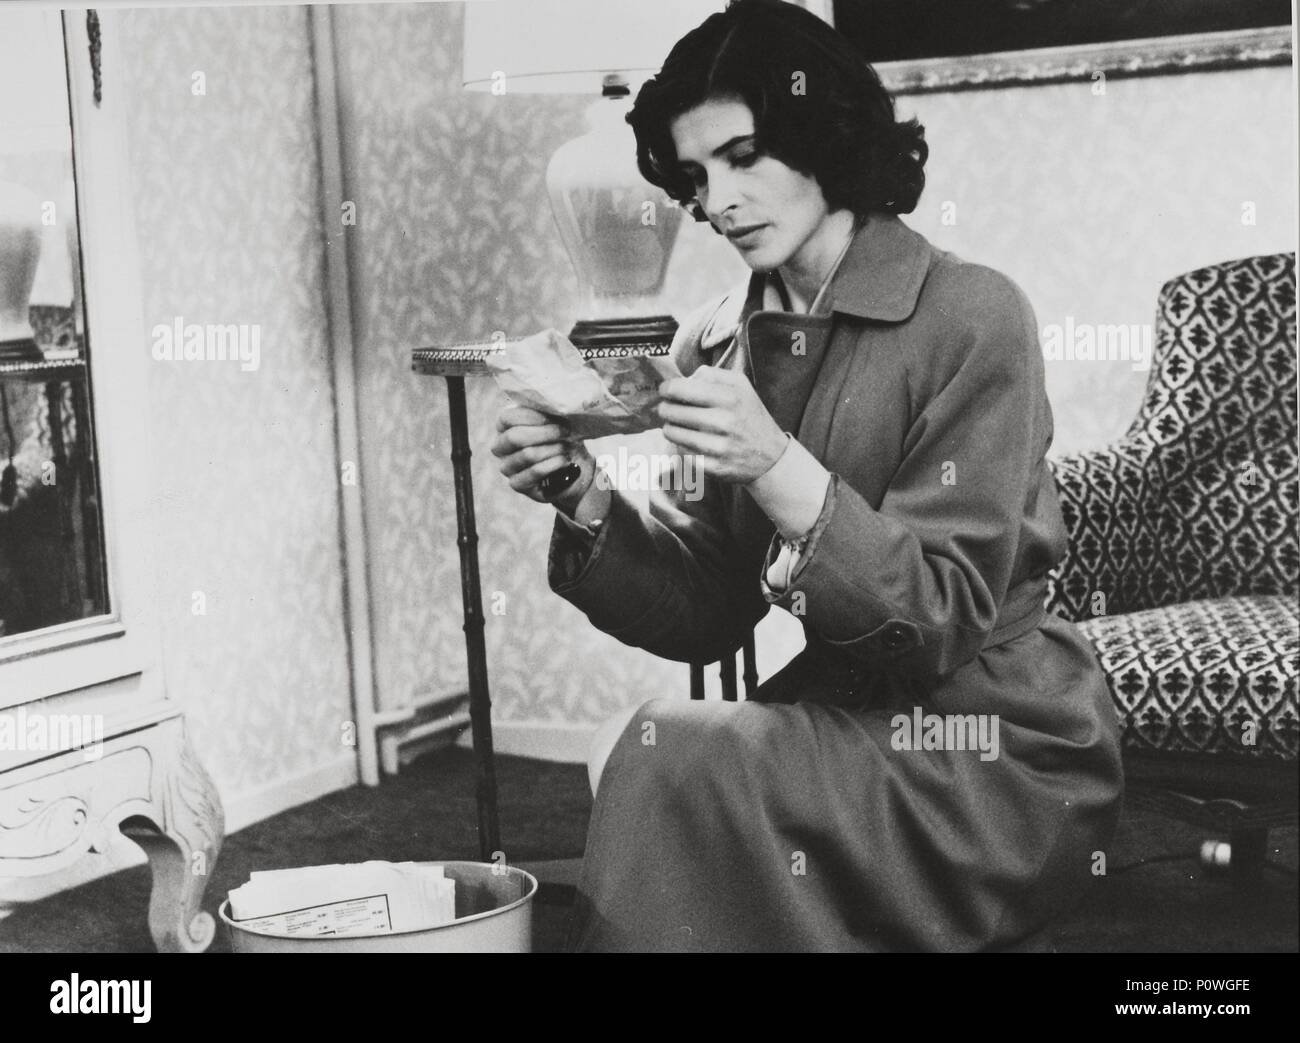 Original Film Title: VIVEMENT DIMANCHE!.  English Title: CONFIDENTIALLY YOURS.  Film Director: FRANCOIS TRUFFAUT.  Year: 1983.  Stars: FANNY ARDANT. Credit: LES FILMS DU CARROSSE / Album - Stock Image